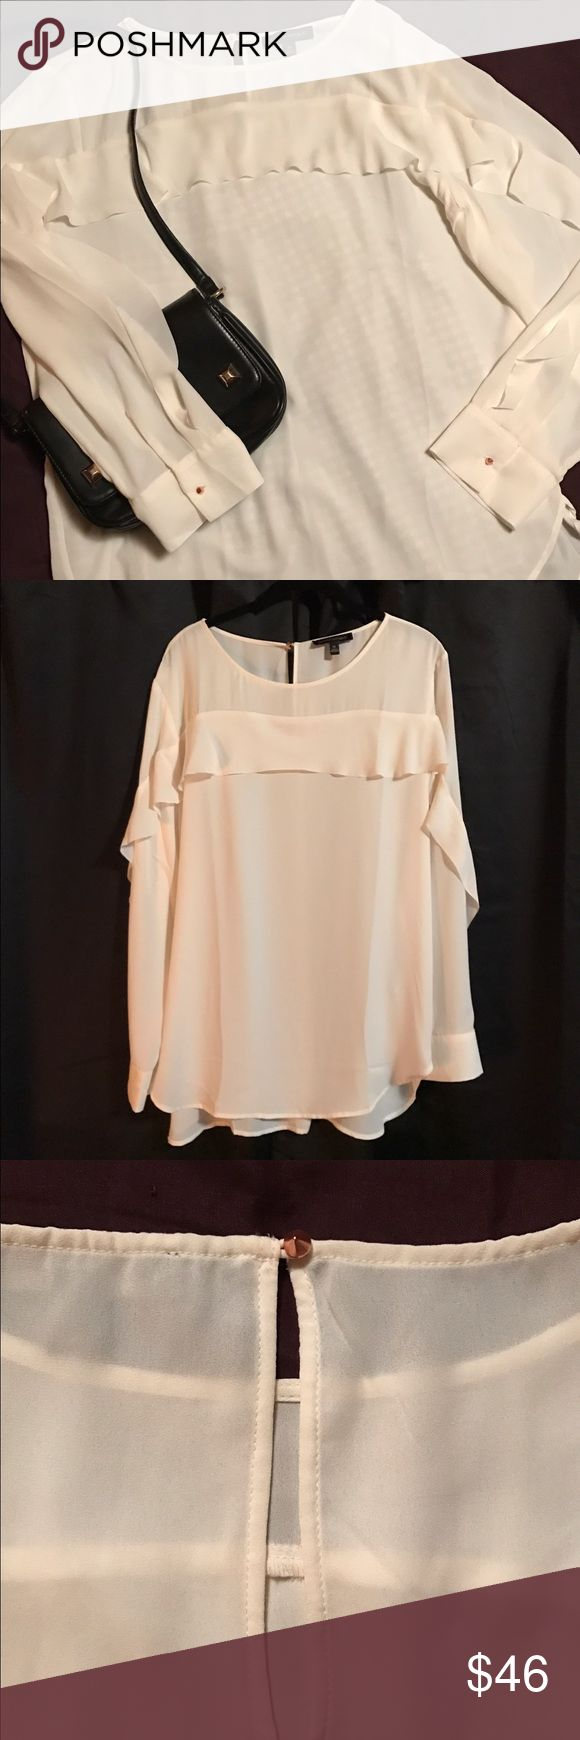 "Romantic, elegant blouse NWOT Creamy white long sleeved blouse with a single loose ruffle that extends from wrist, up arm, across upper chest, down opposite arm, ending at wrist.  Shirt tail hem measures 26"" front neck to hem and 30"" back neck to hem. Cuffed wrists and back neck close with rose gold rounded pyramid shaped buttons.  Stunning with a pencil skirt or skinny pants.  100% polyester, machine washable. Banana Republic Tops Blouses"